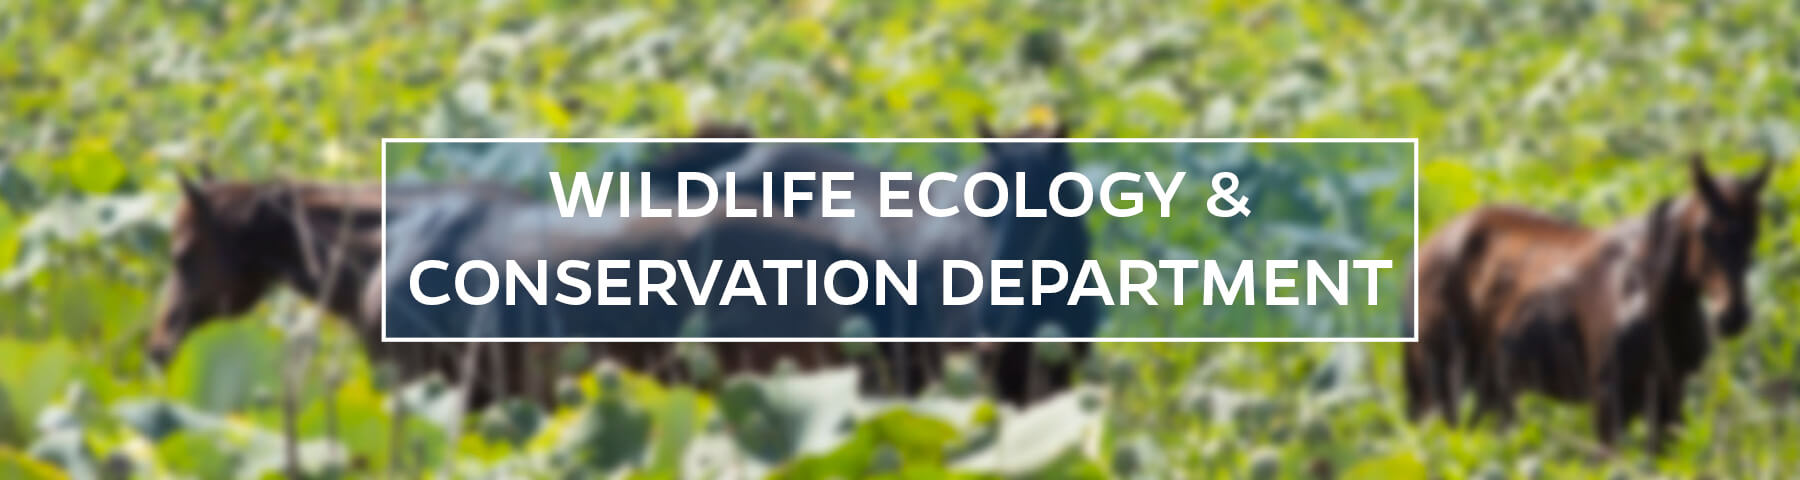 UF/IFAS Wildlife Ecology and Conservation Department